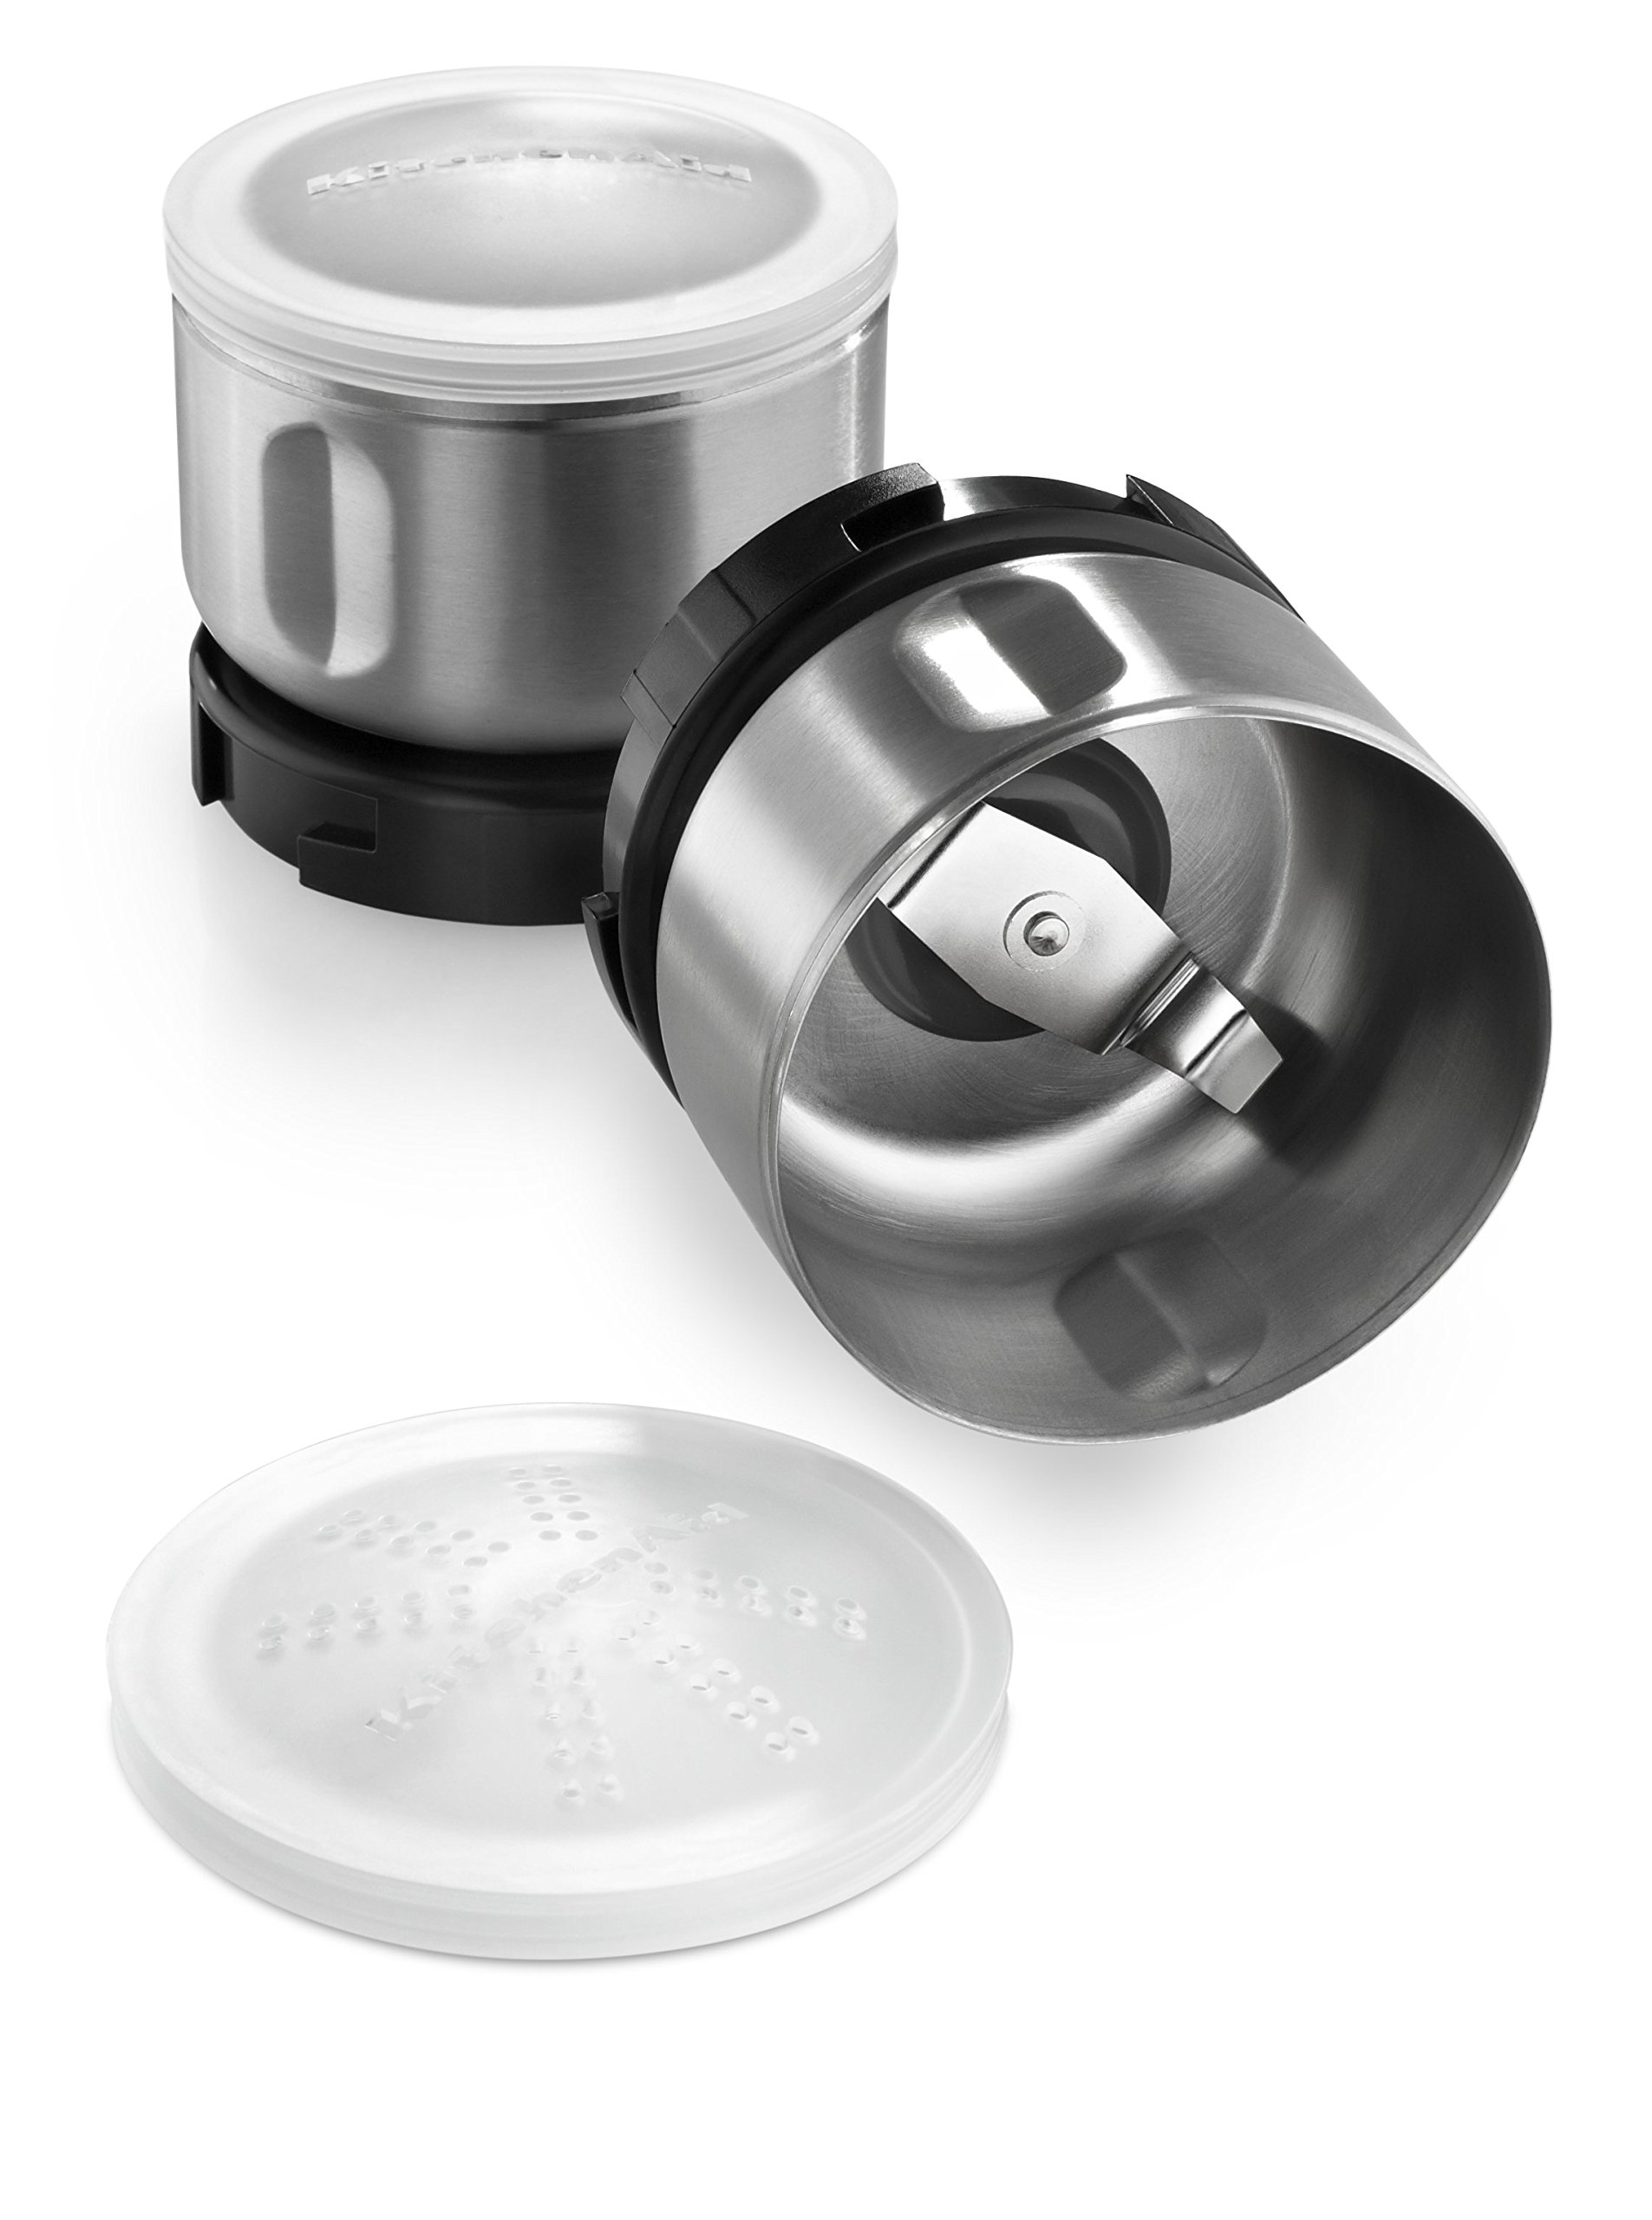 KitchenAid Bcgsga Spice Grinder Accessory Kit, Stainless Steel by KitchenAid